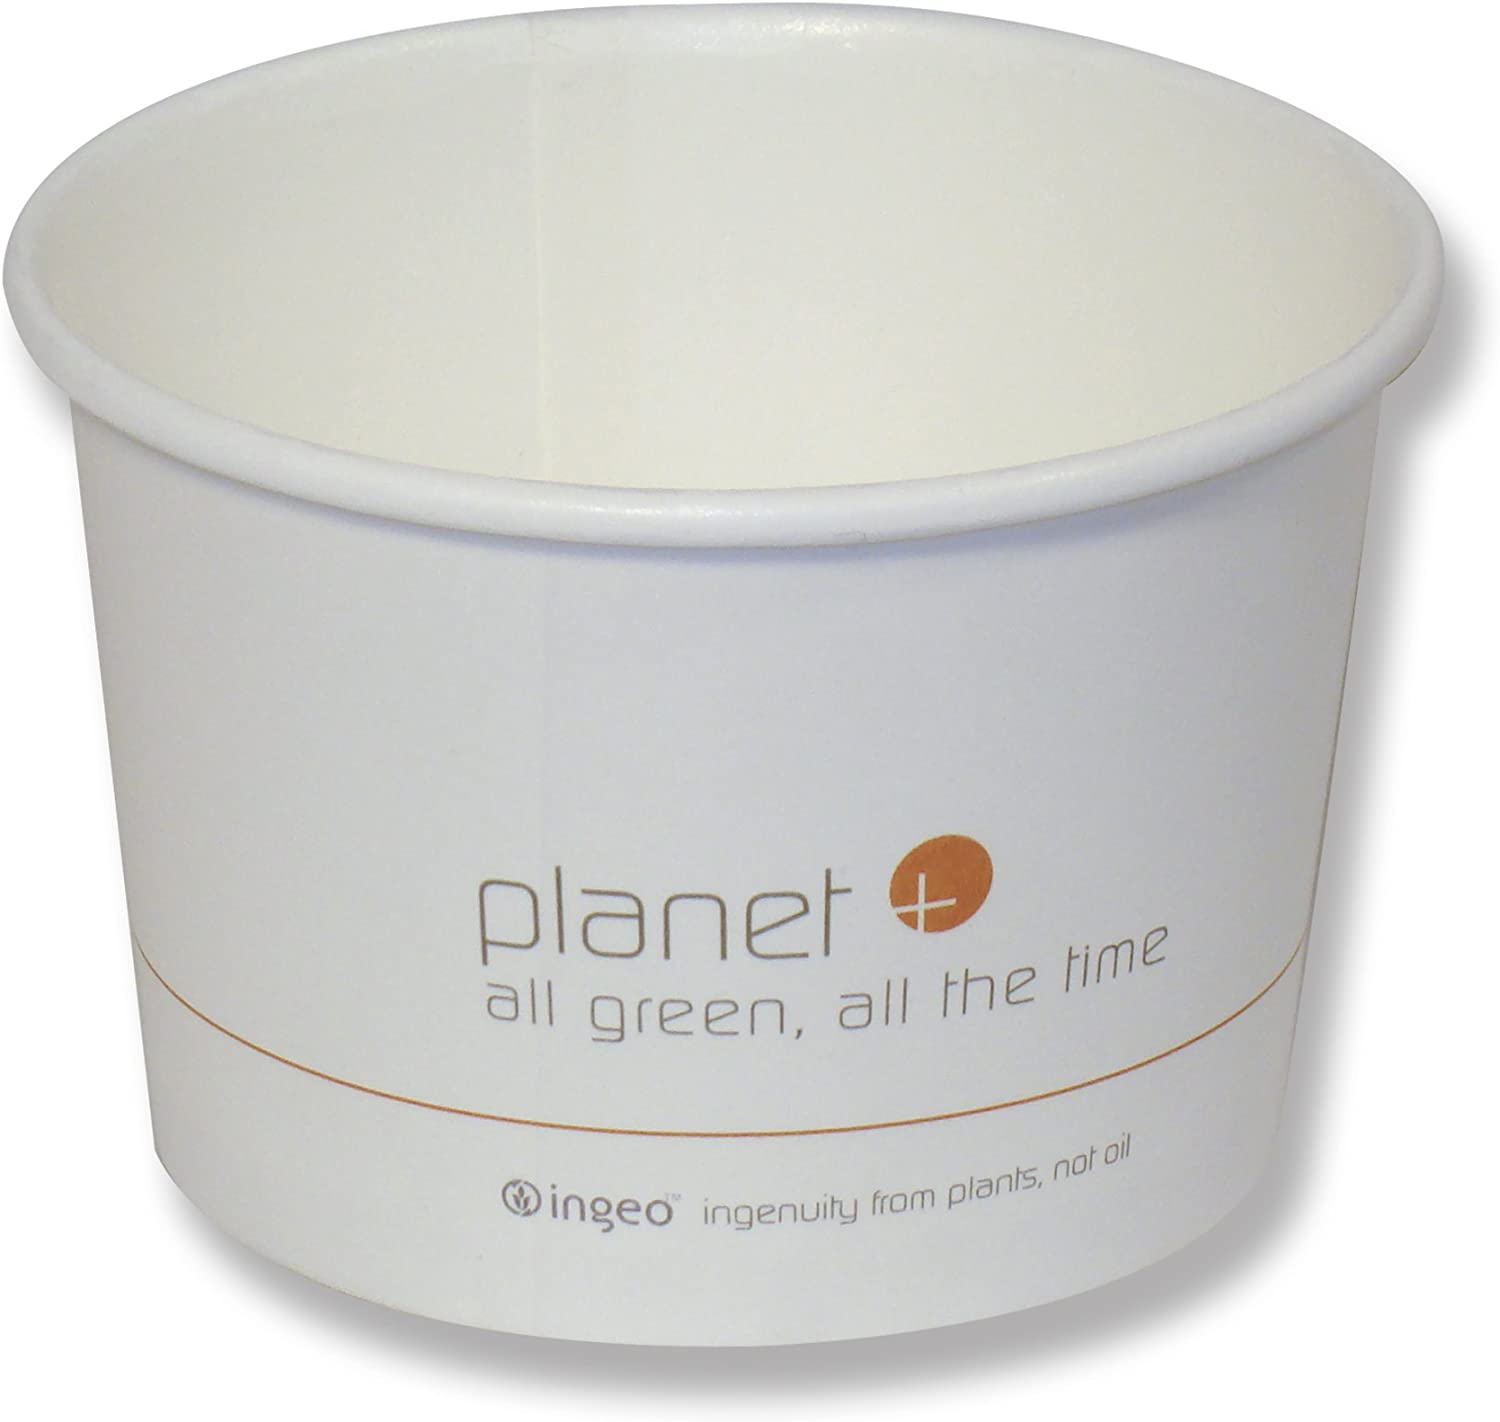 Planet+ 100% Compostable PLA Laminated Food Container, 16-Ounce, 500-Count Case